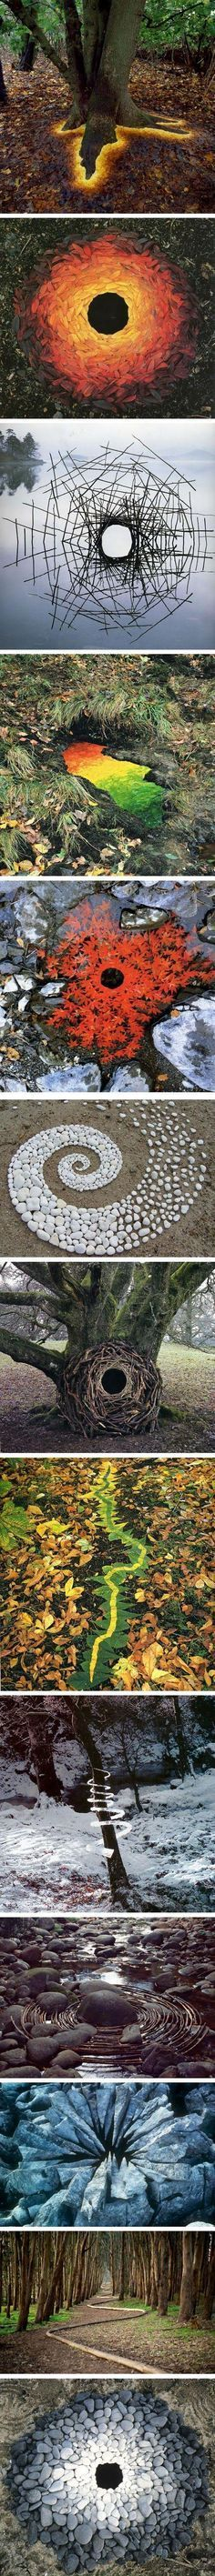 An+Artist+Used+Nature+To+Create+Some+Amazing+Land+Art